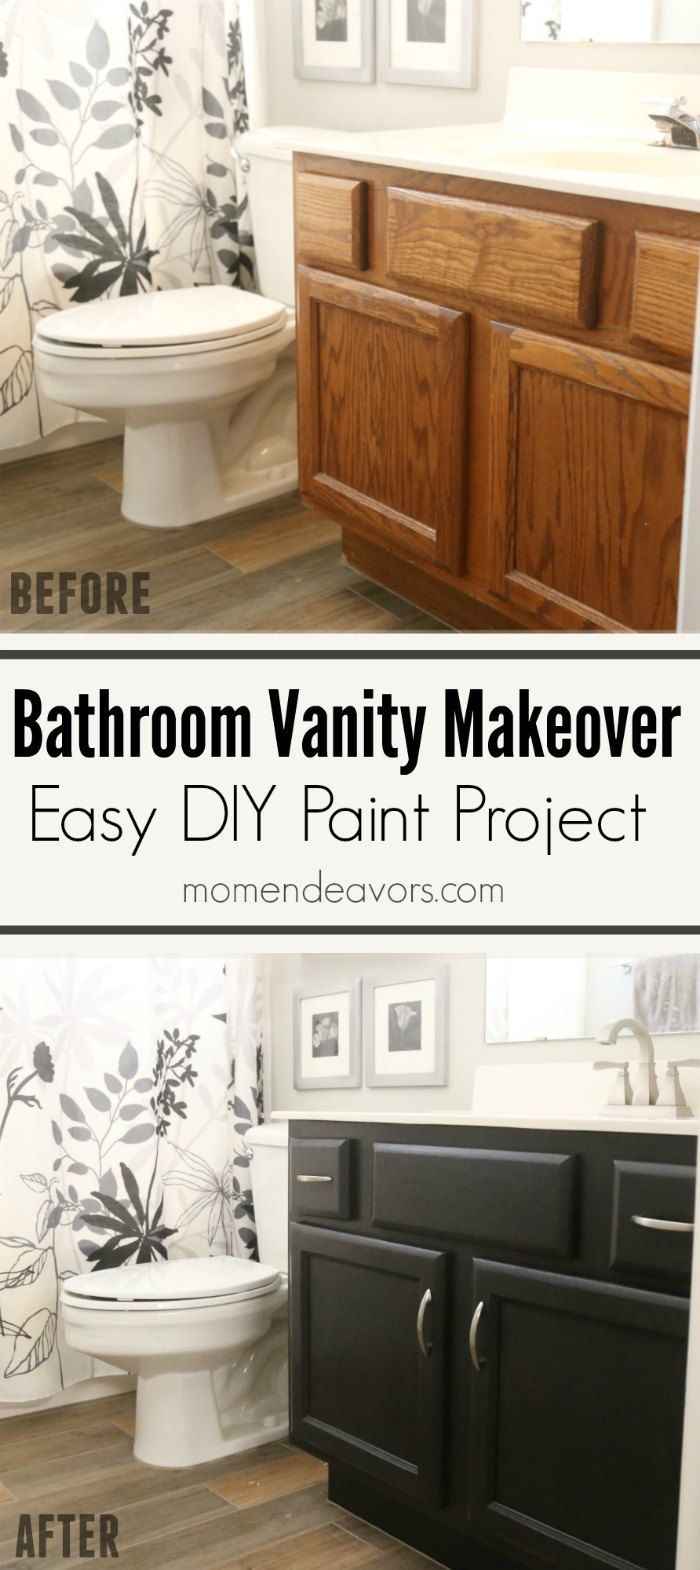 Painted Bathroom Cabinets Bathroom Vanity Makeover Easy Diy Home Paint Project Paint